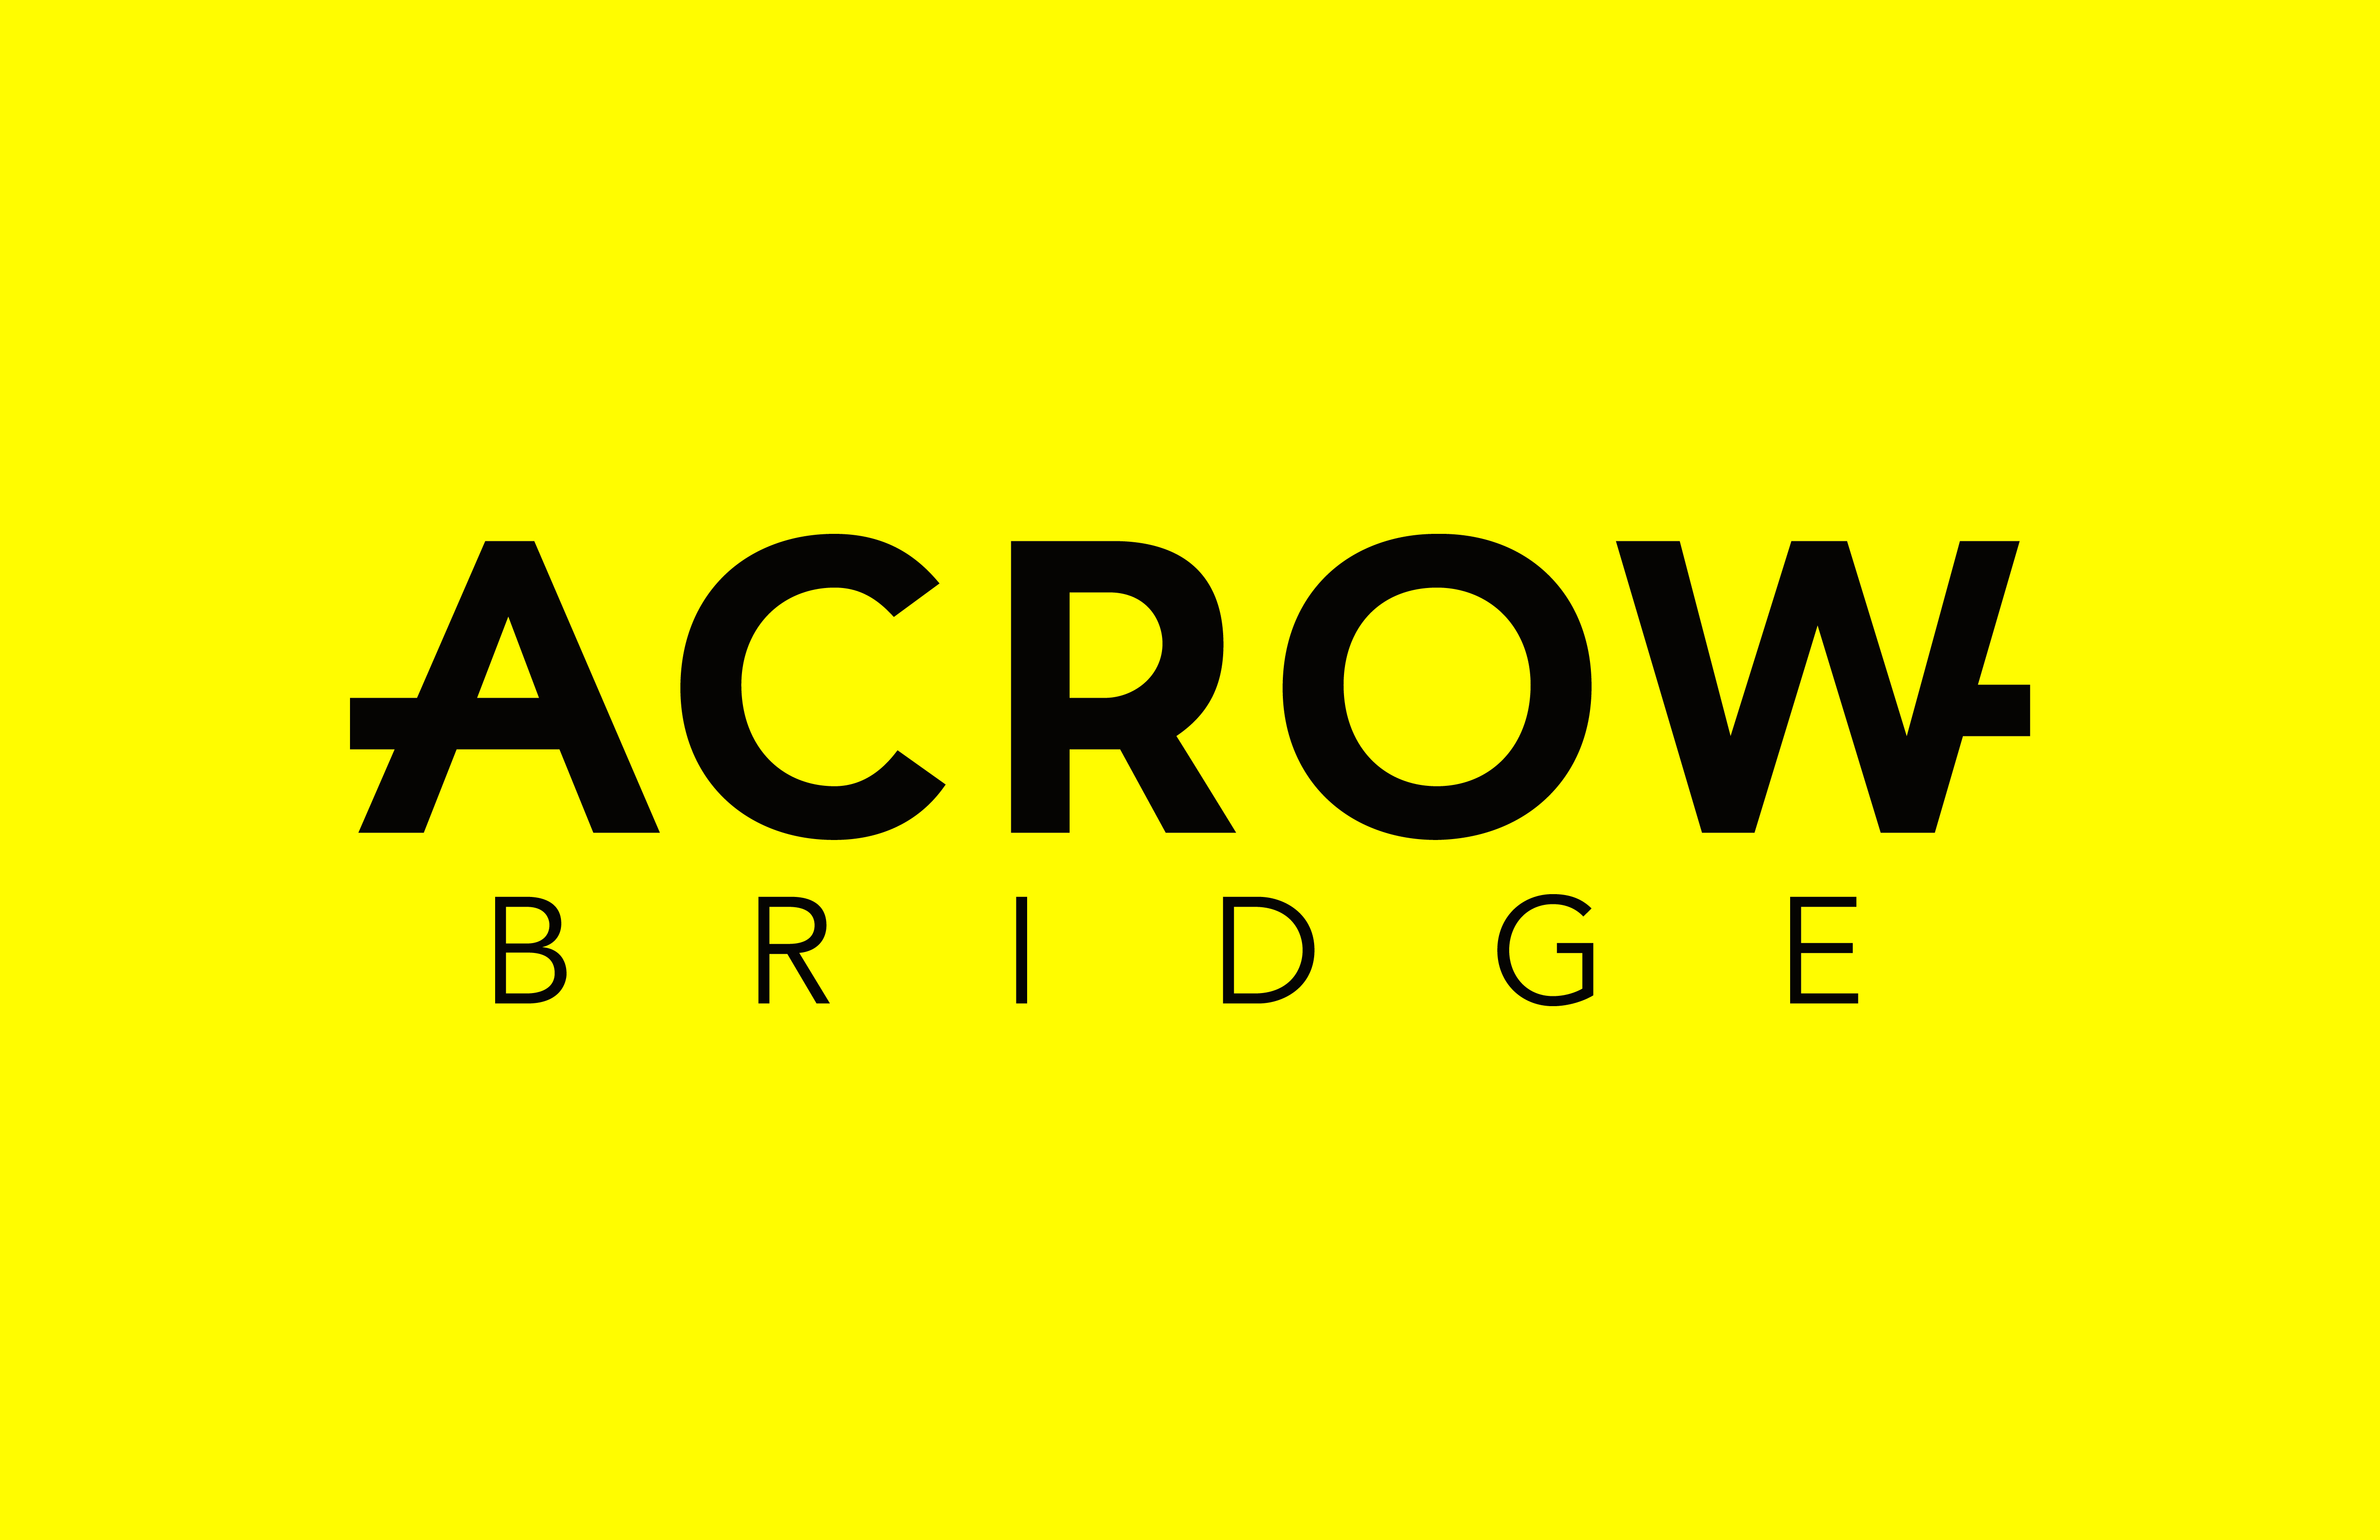 Acrow Bridge Logo